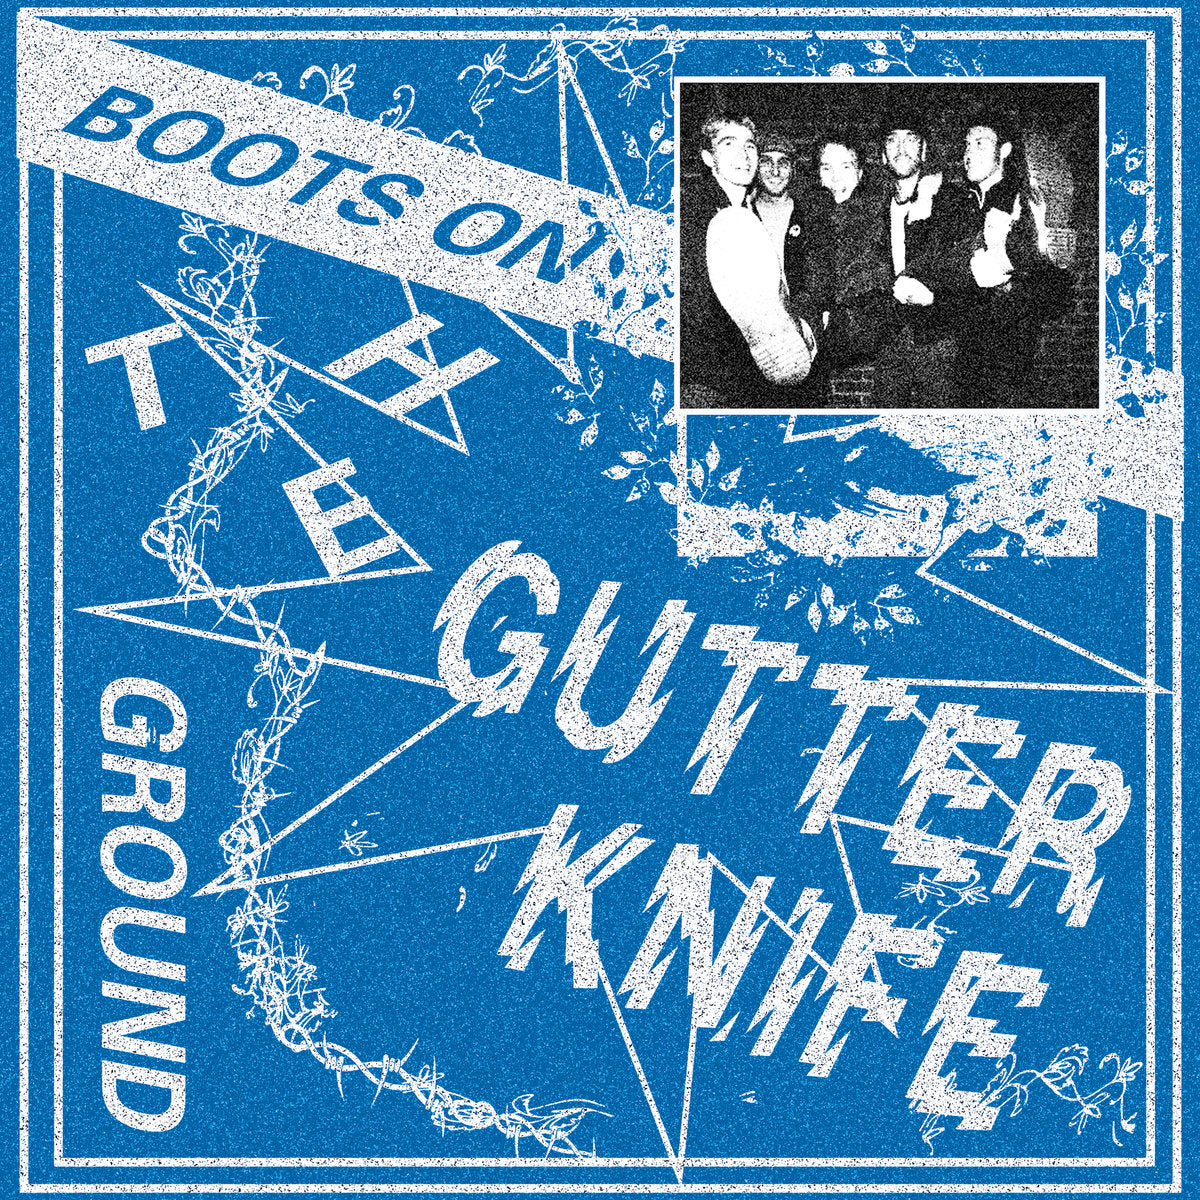 GUTTER KNIFE 'Boots On The Ground' 12""